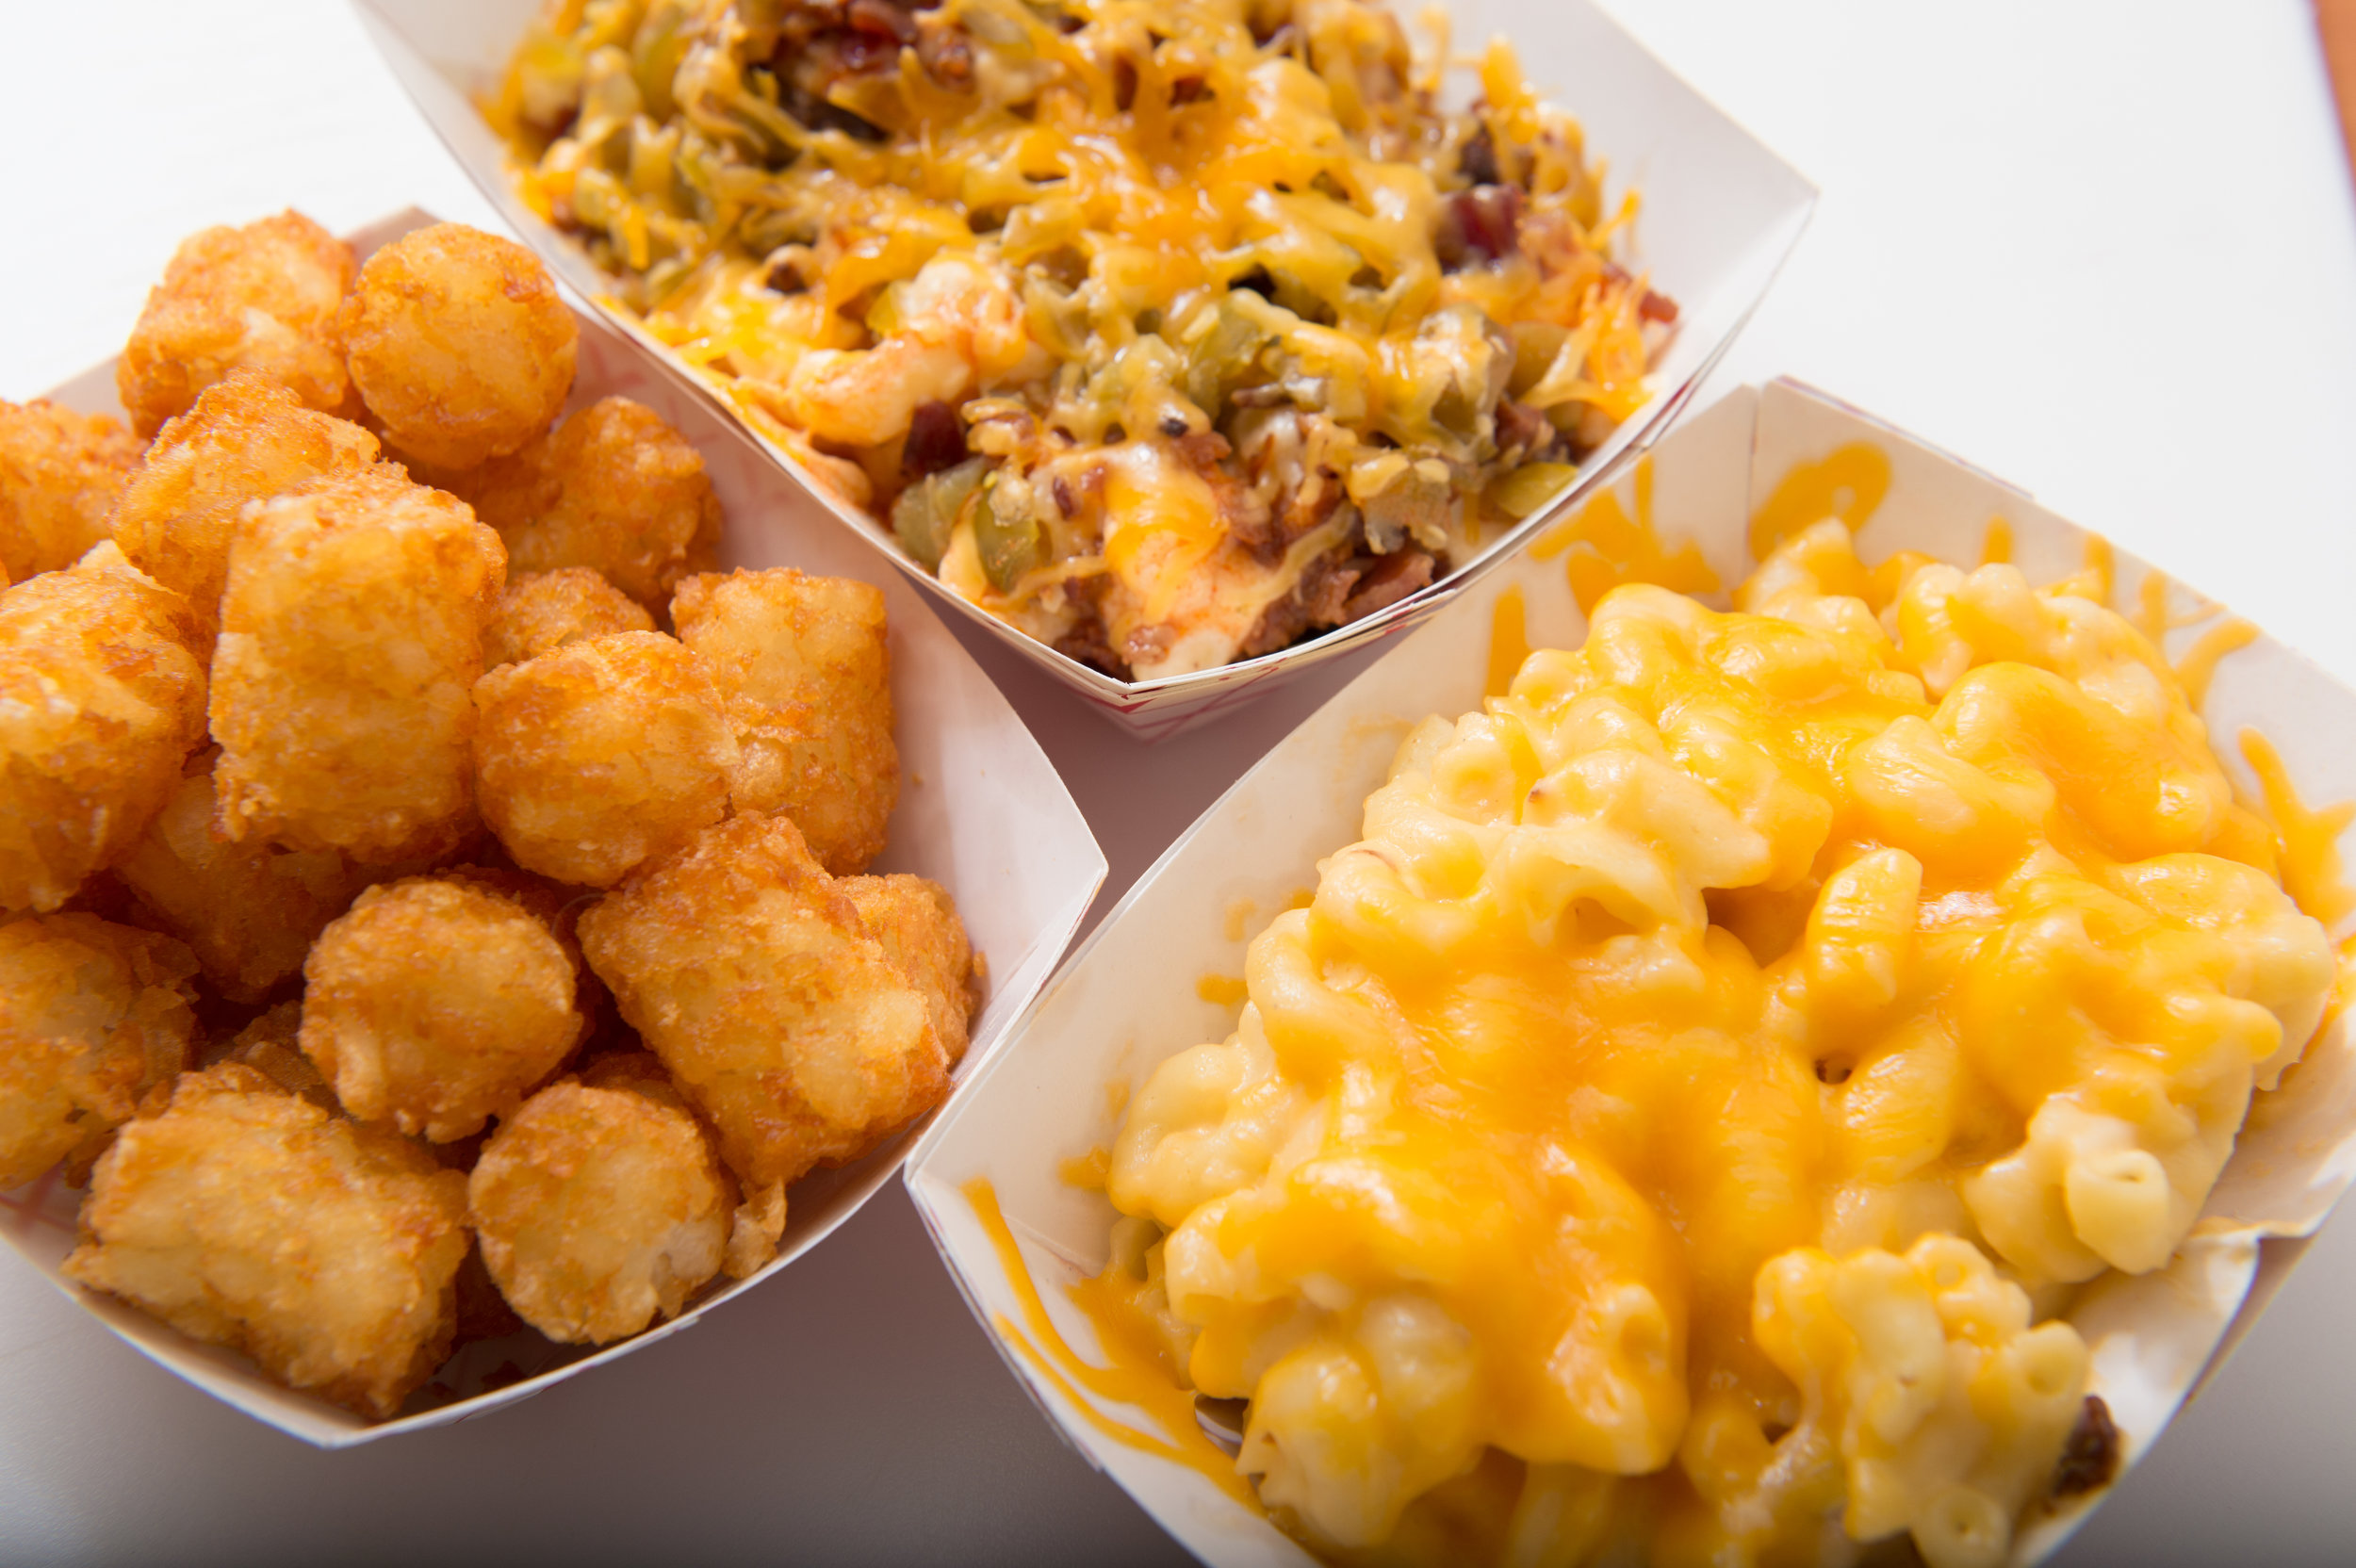 Famous Tots, Creamy Mac N Cheese or Loaded. Which side do you want?